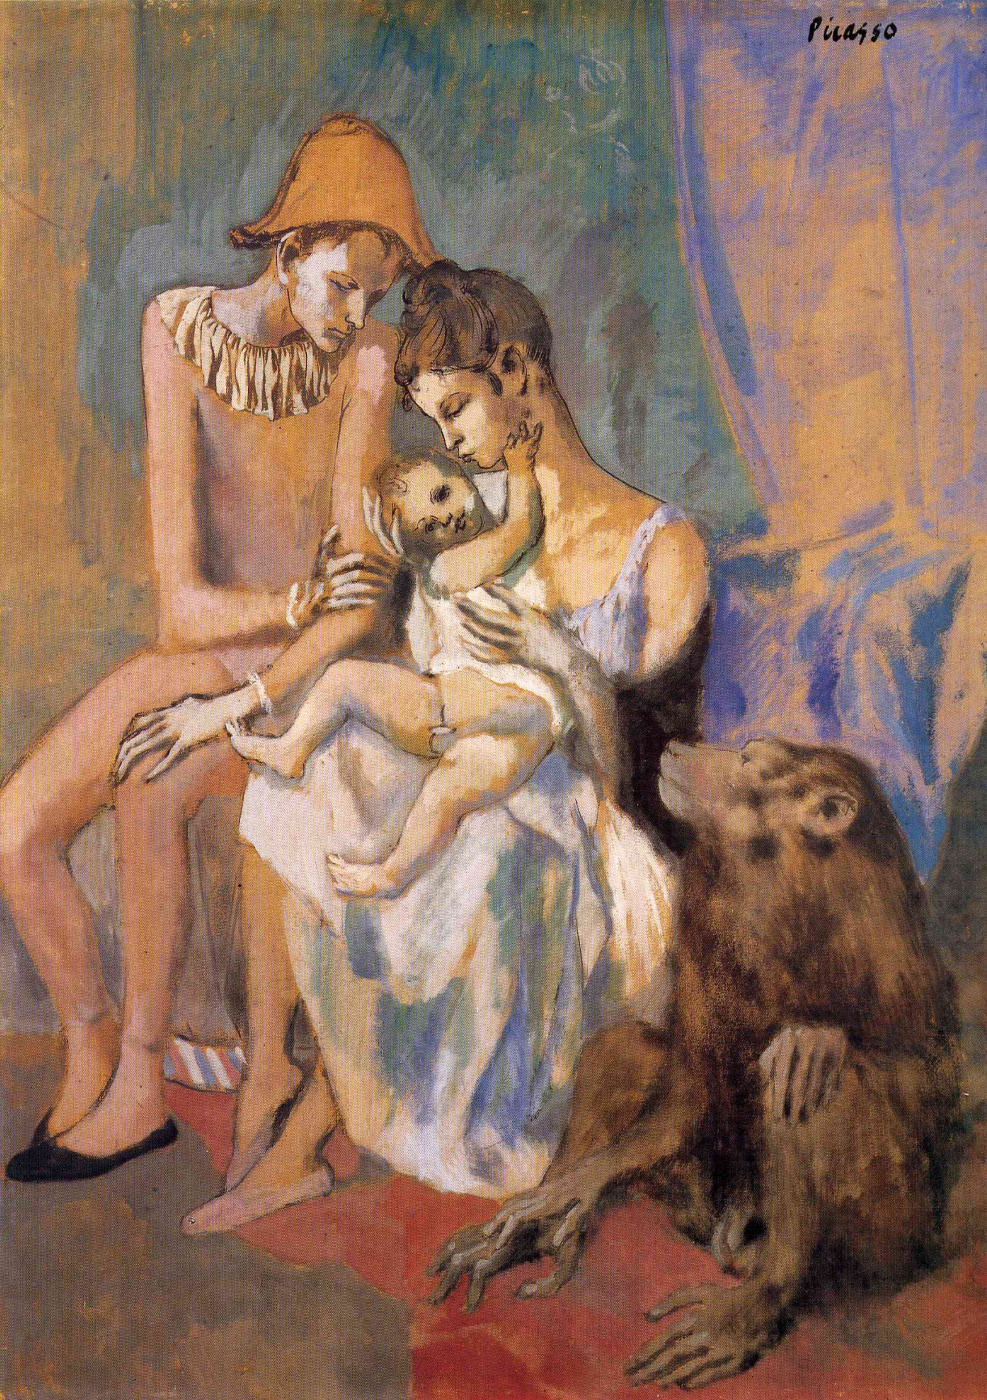 Pablo Picasso. Family of acrobats with a monkey